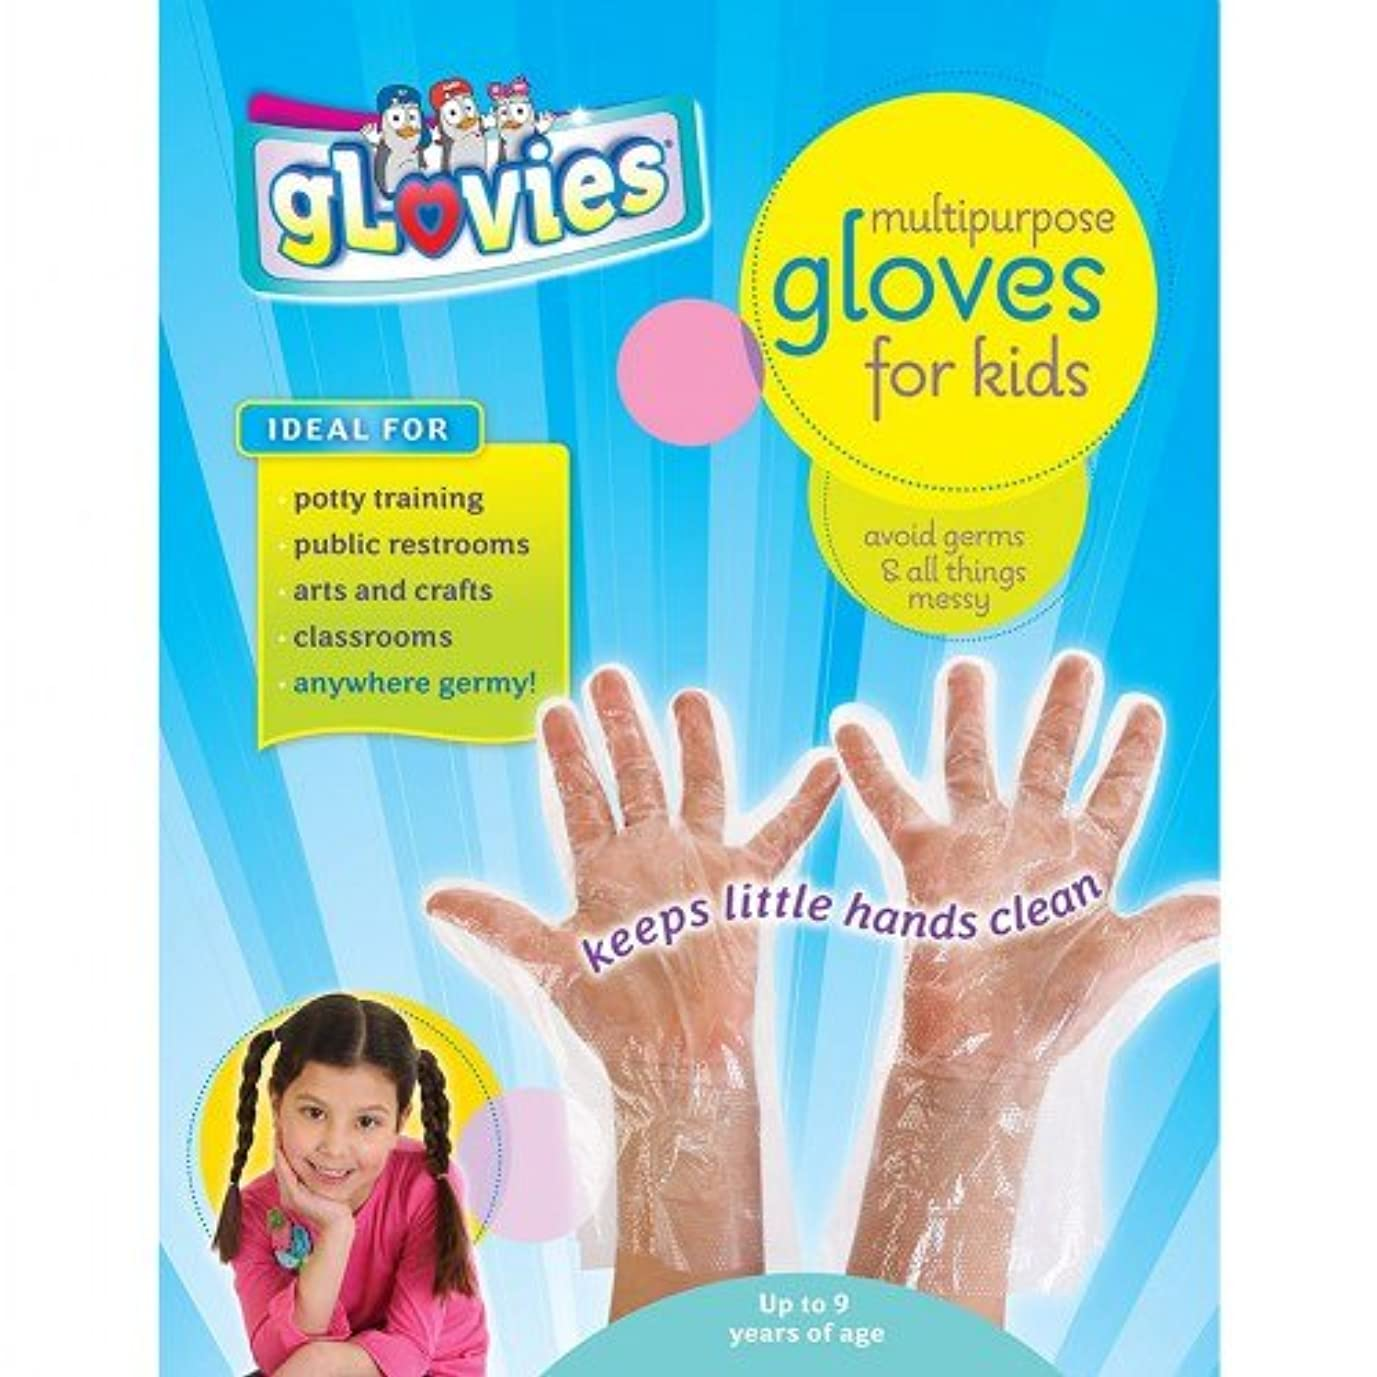 ブレイズ強い定説Glovies Multipurpose LATEX-FREE DISPOSABLE Gloves for Kids (100 Count) by gLovies 100 Count Gloves